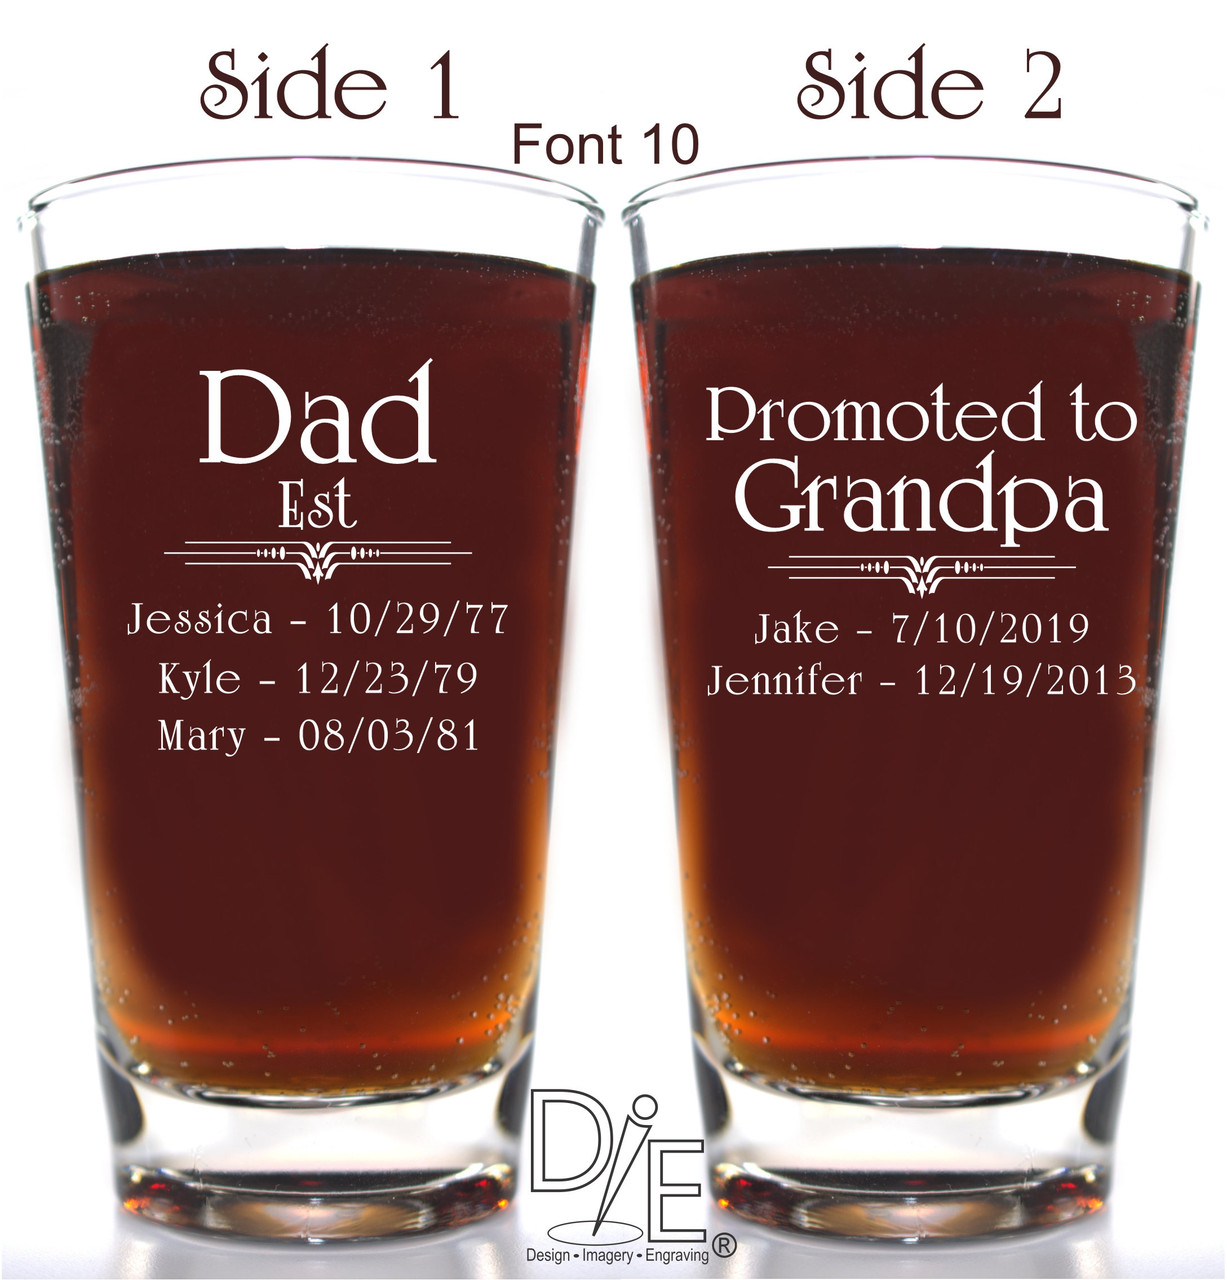 8abfc8c4818 Dad Promoted to Grandpa Pilsner with names and dates in Font 10 by Design  Imagery Engraving